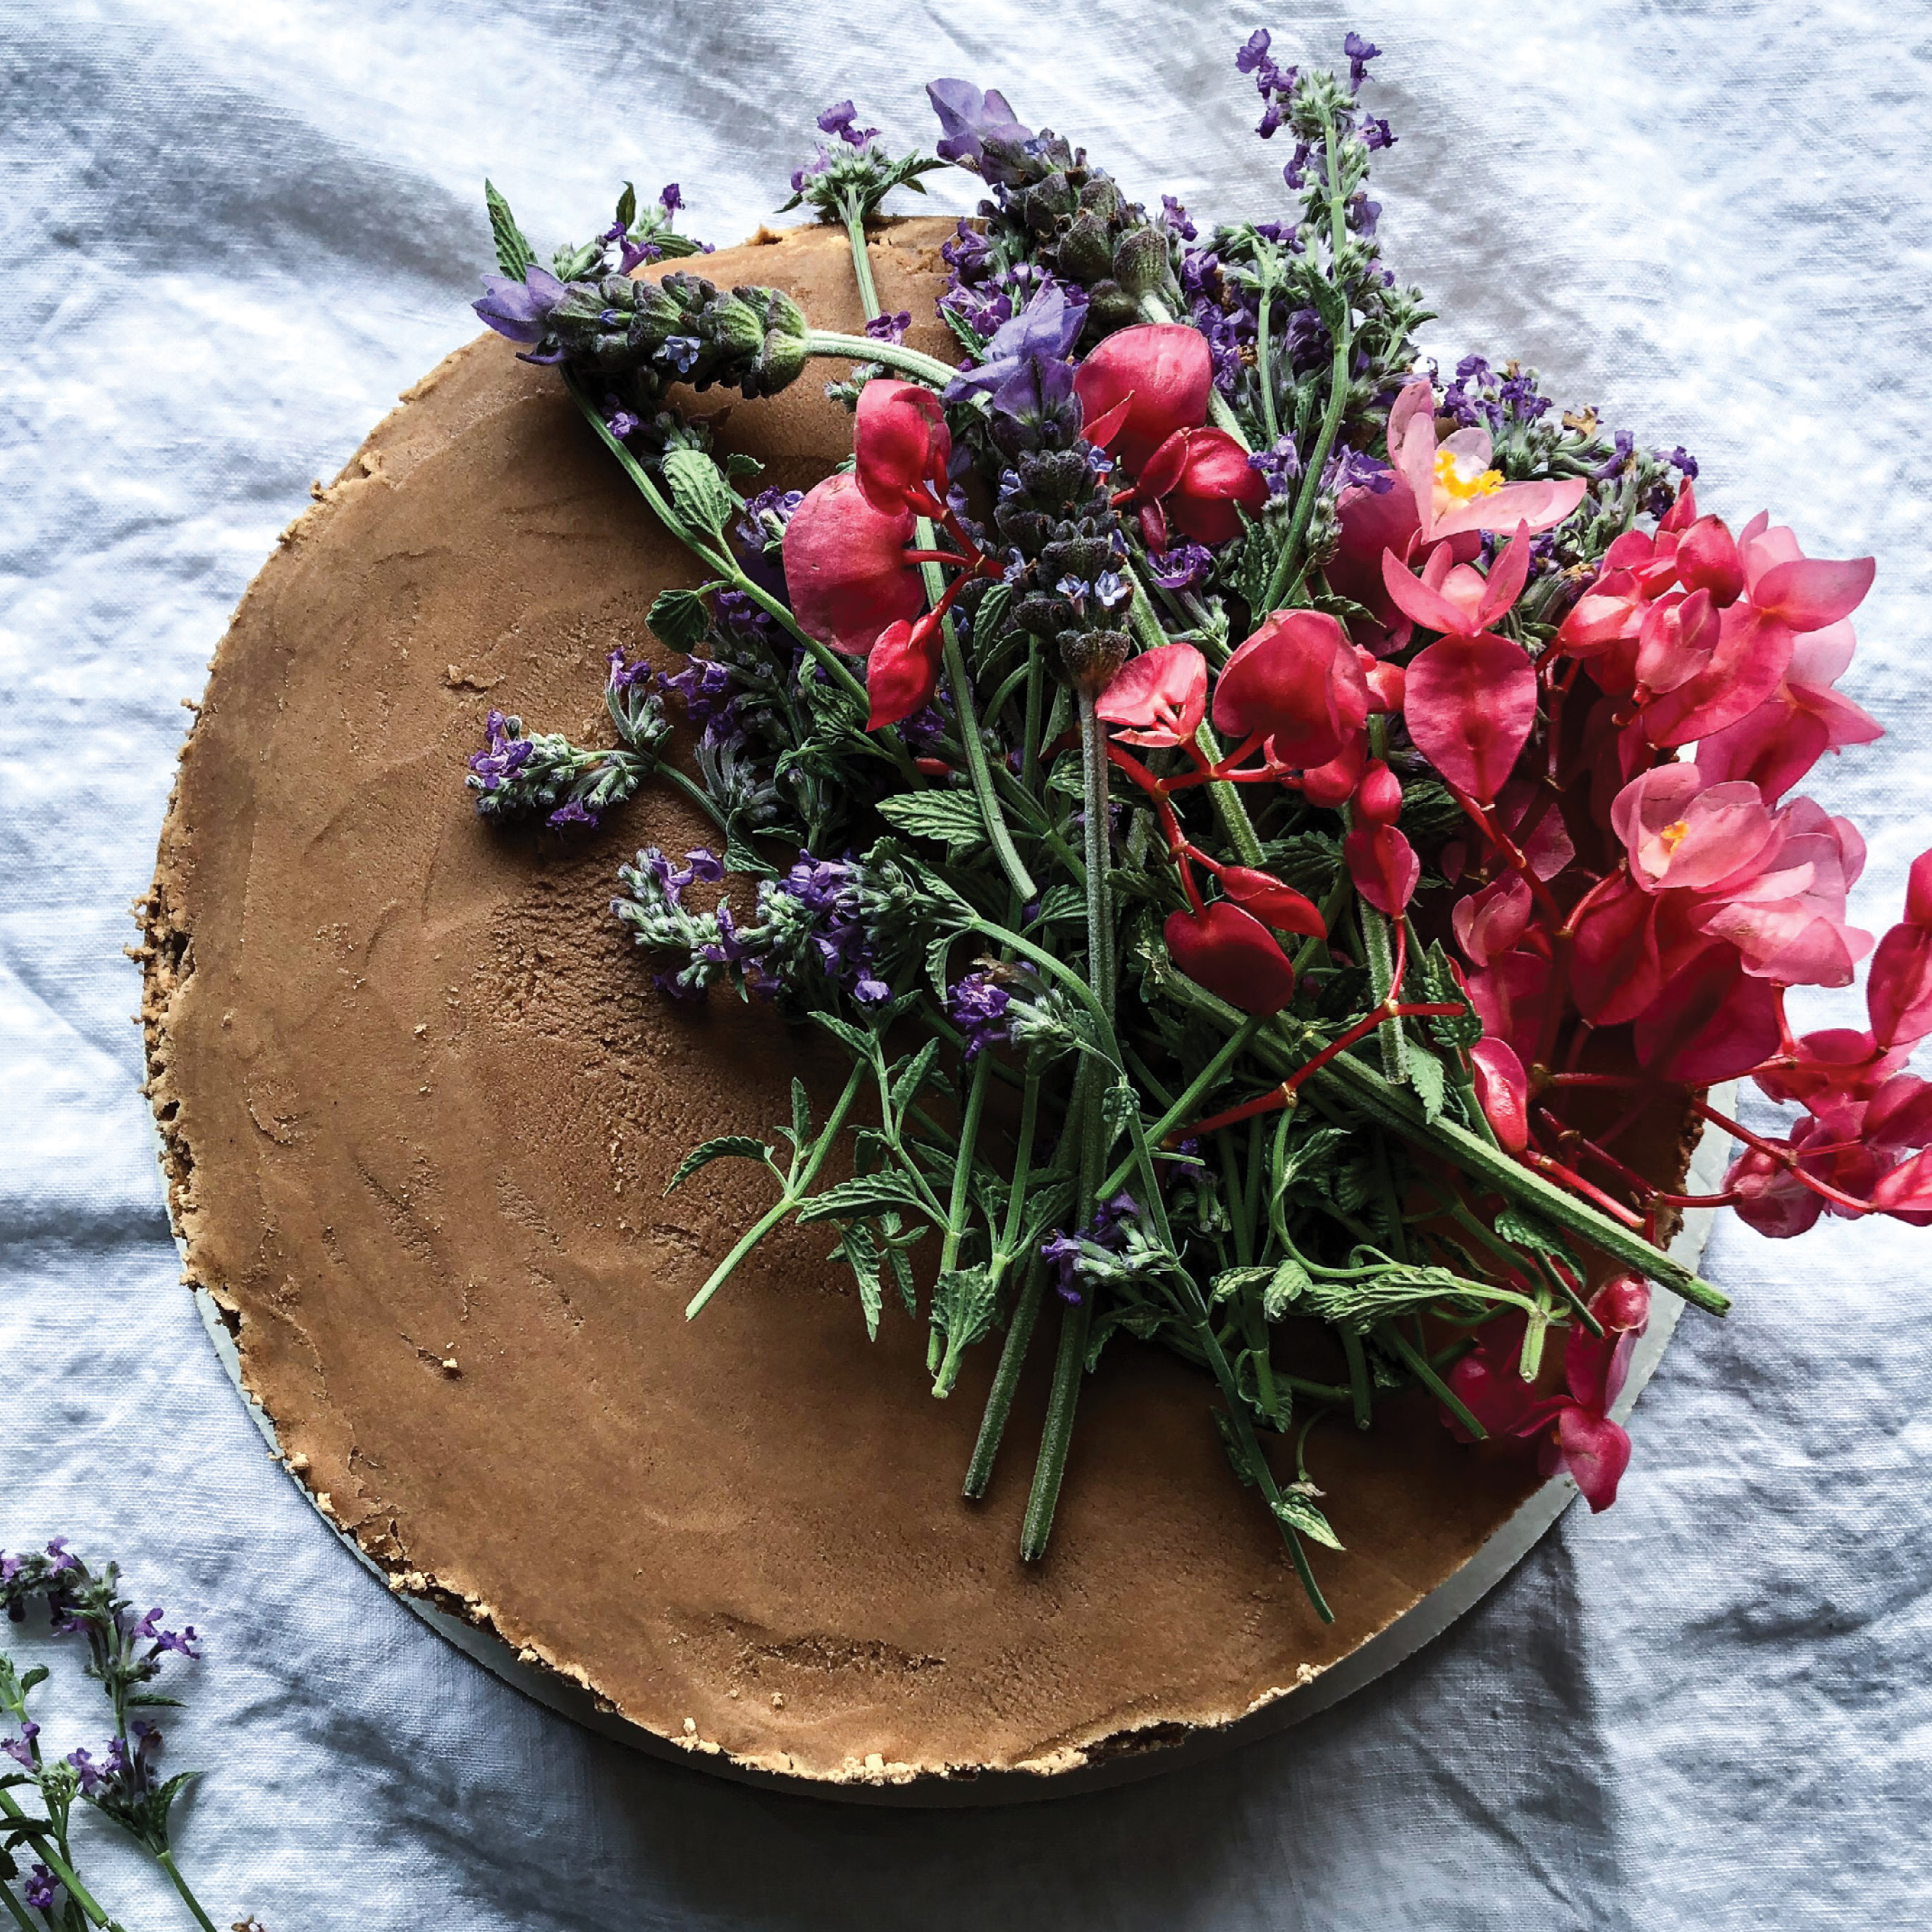 """""""Indulgent but clean""""—that's how chef and food stylist Cynthia Groseclose describes her new health-focused baking venture, Plante Pâtissière."""